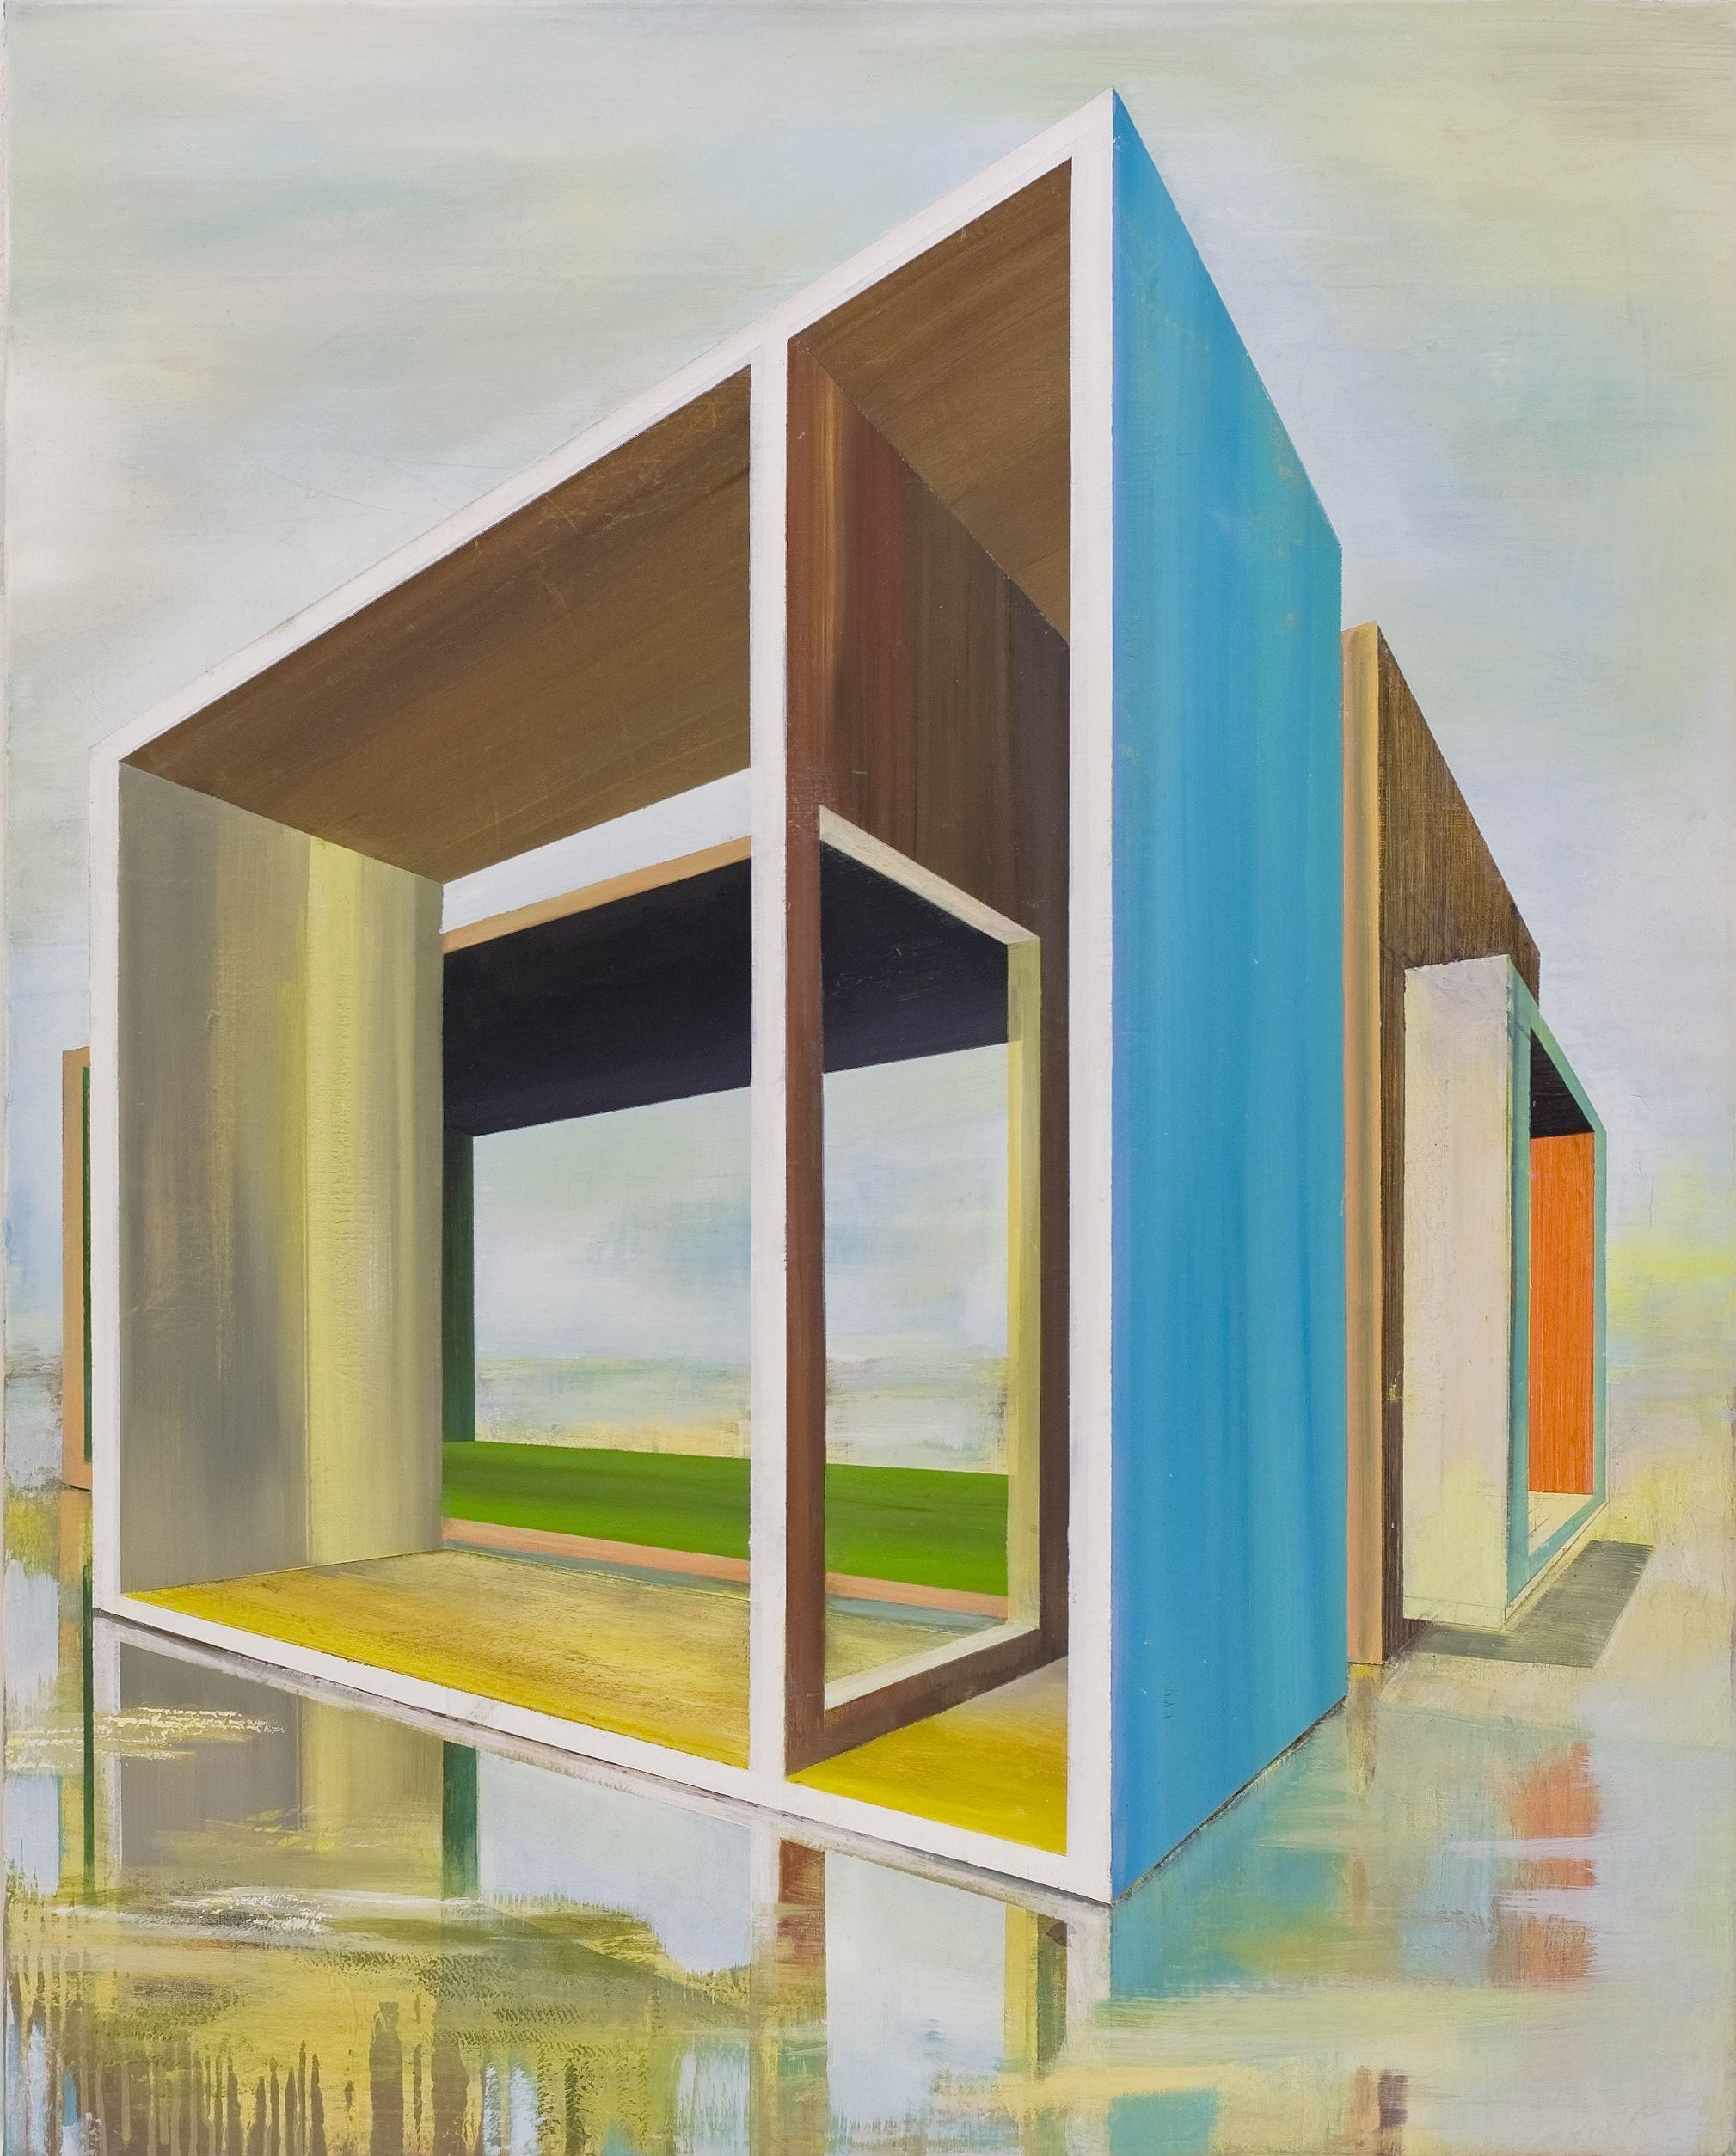 Rooms,Emanuel Schulze,Contemporary painting